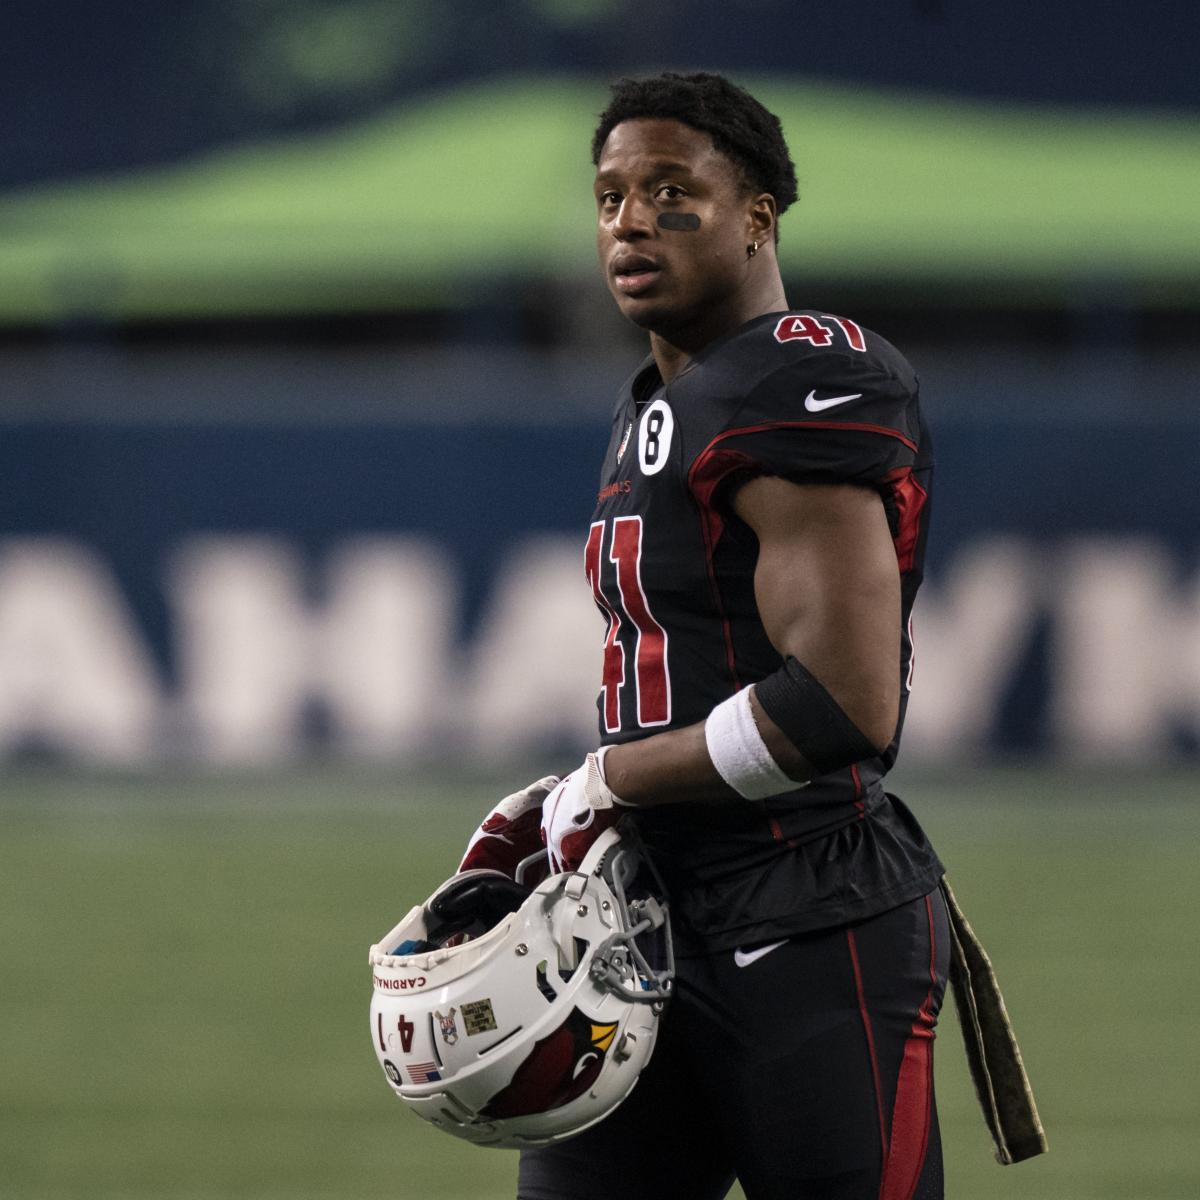 NFL Free Agents Most Likely to Be Overpaid in 2021 Offseason